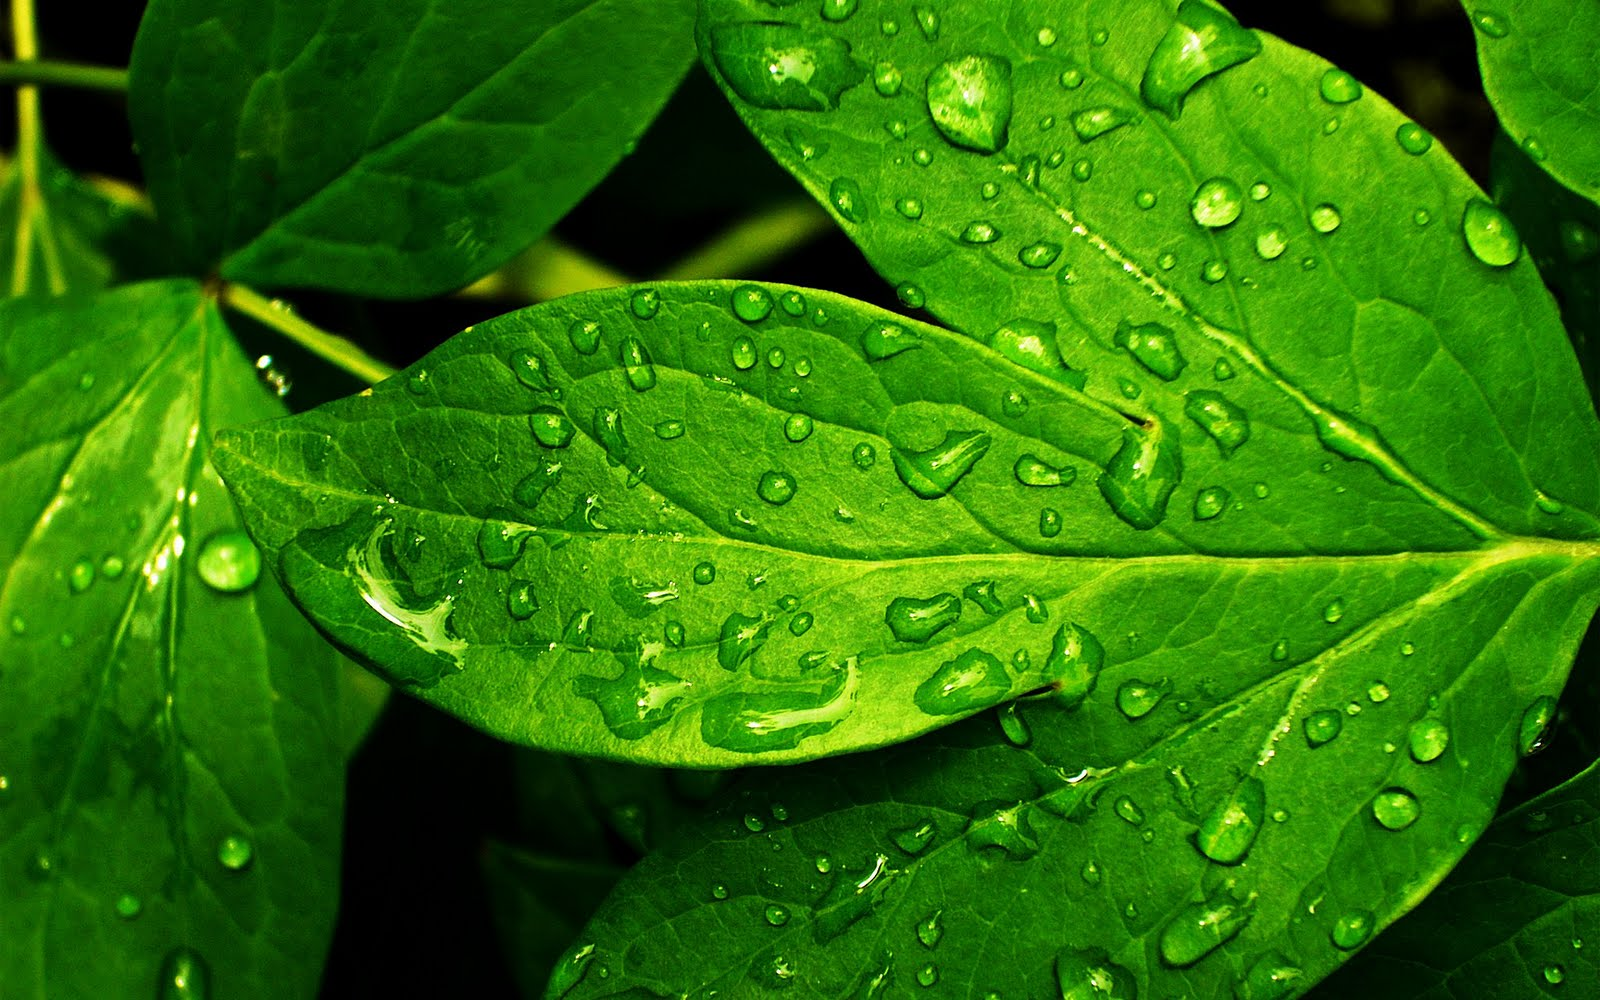 central wallpaper rain drops on leaf hd close up wallpapers